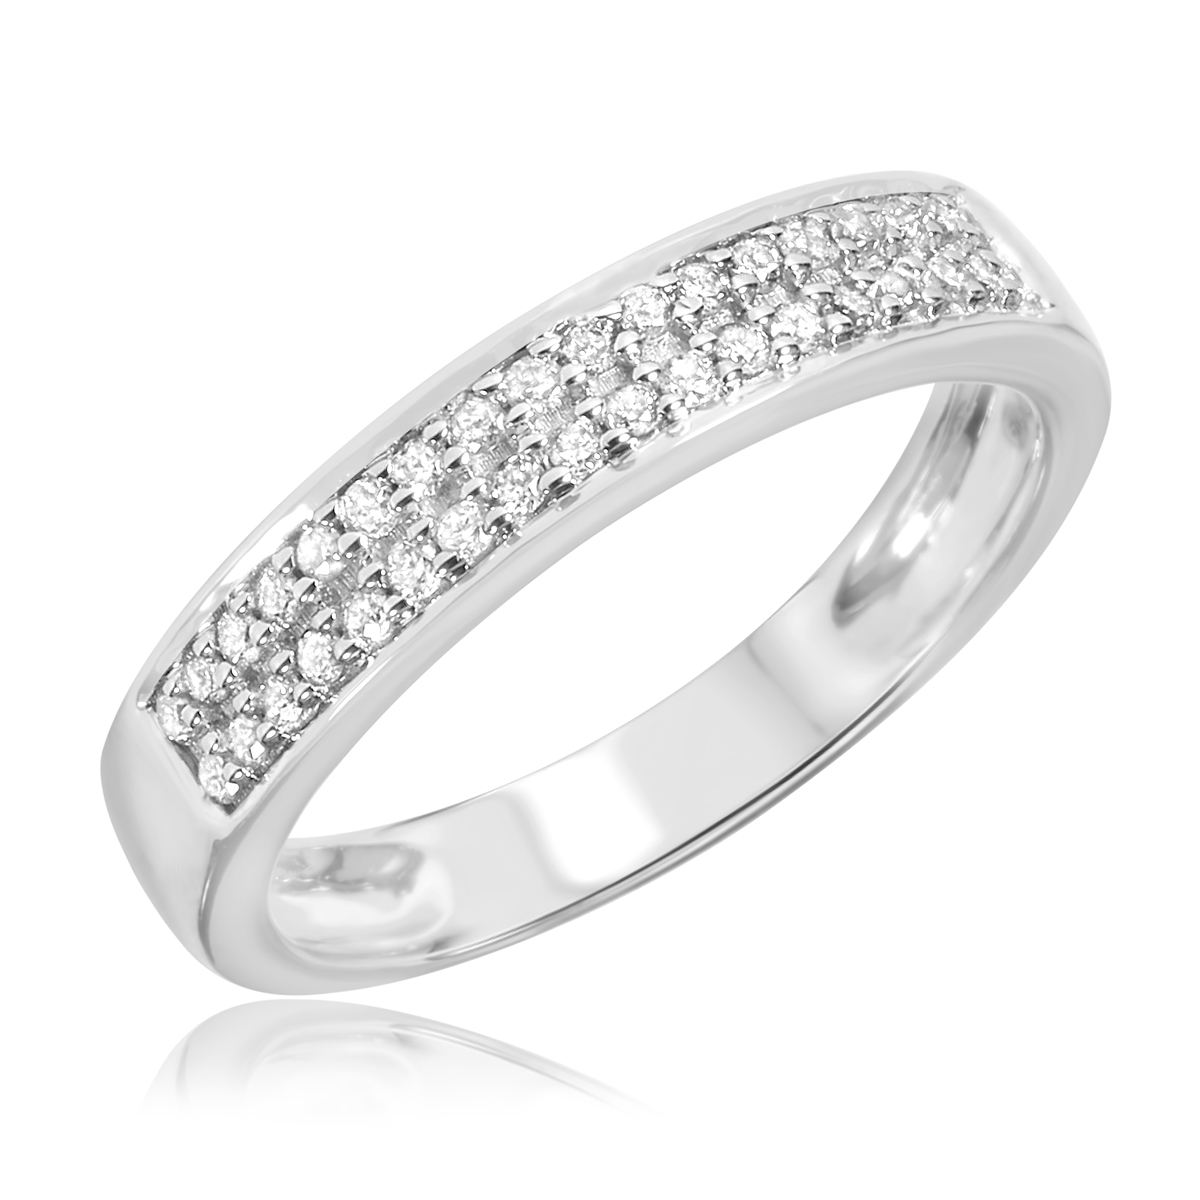 1 2 ct t w his and hers wedding rings 10k white